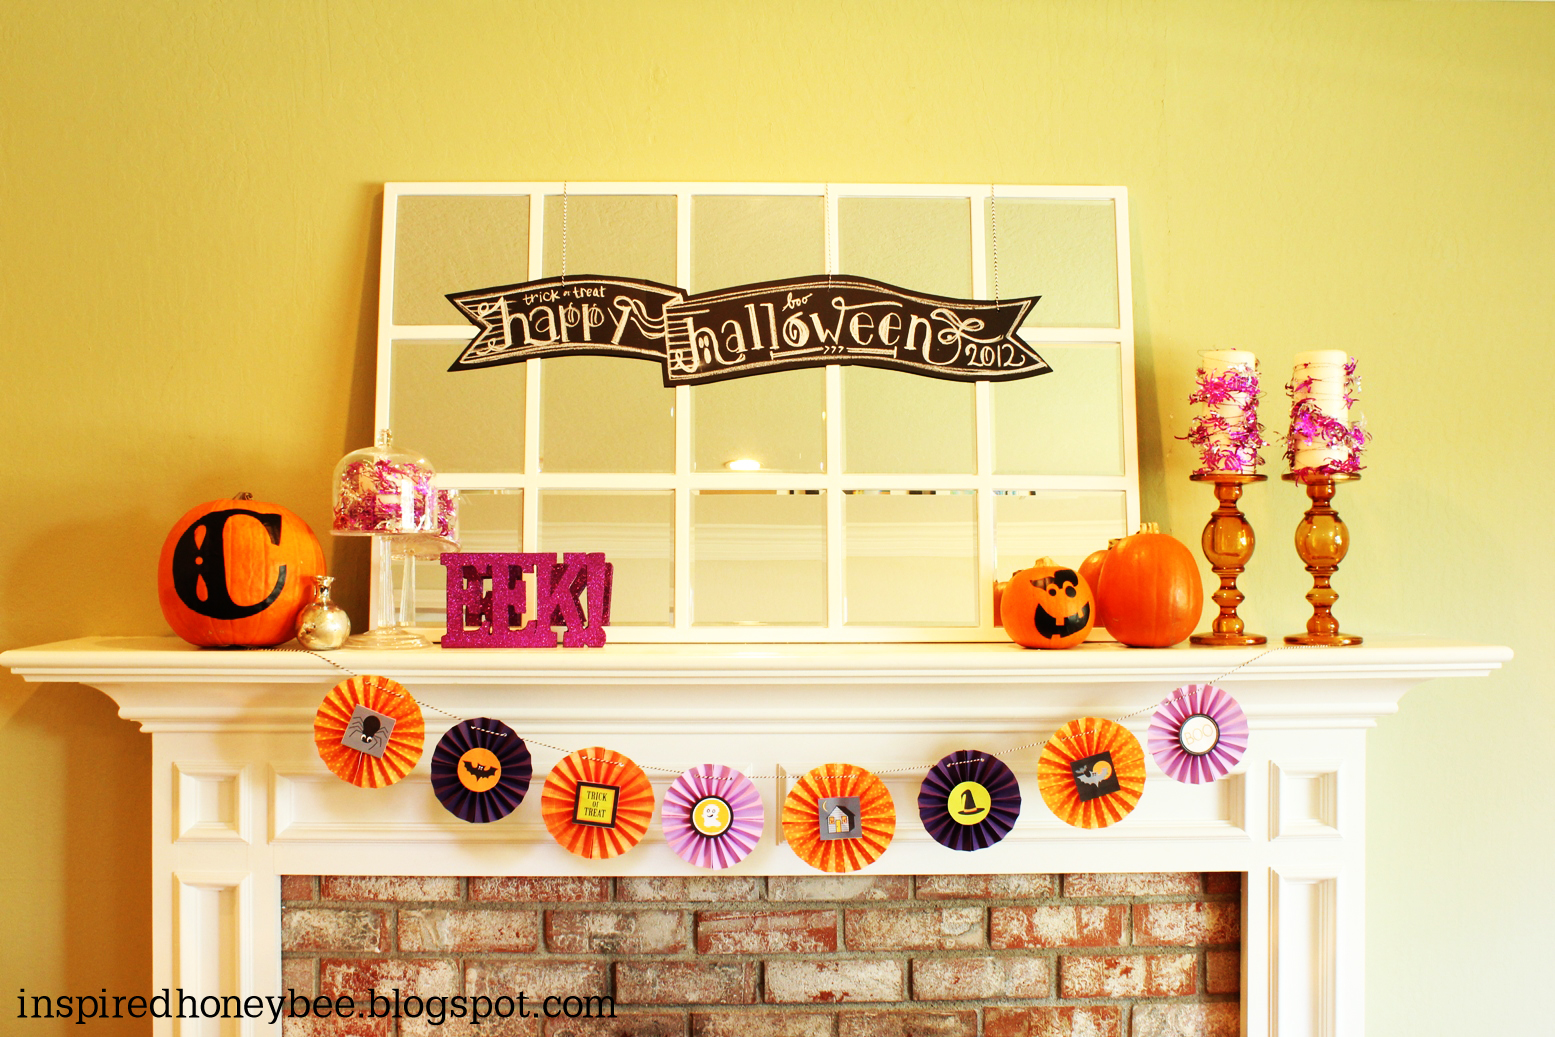 inspired honey bee home welcome october and halloween